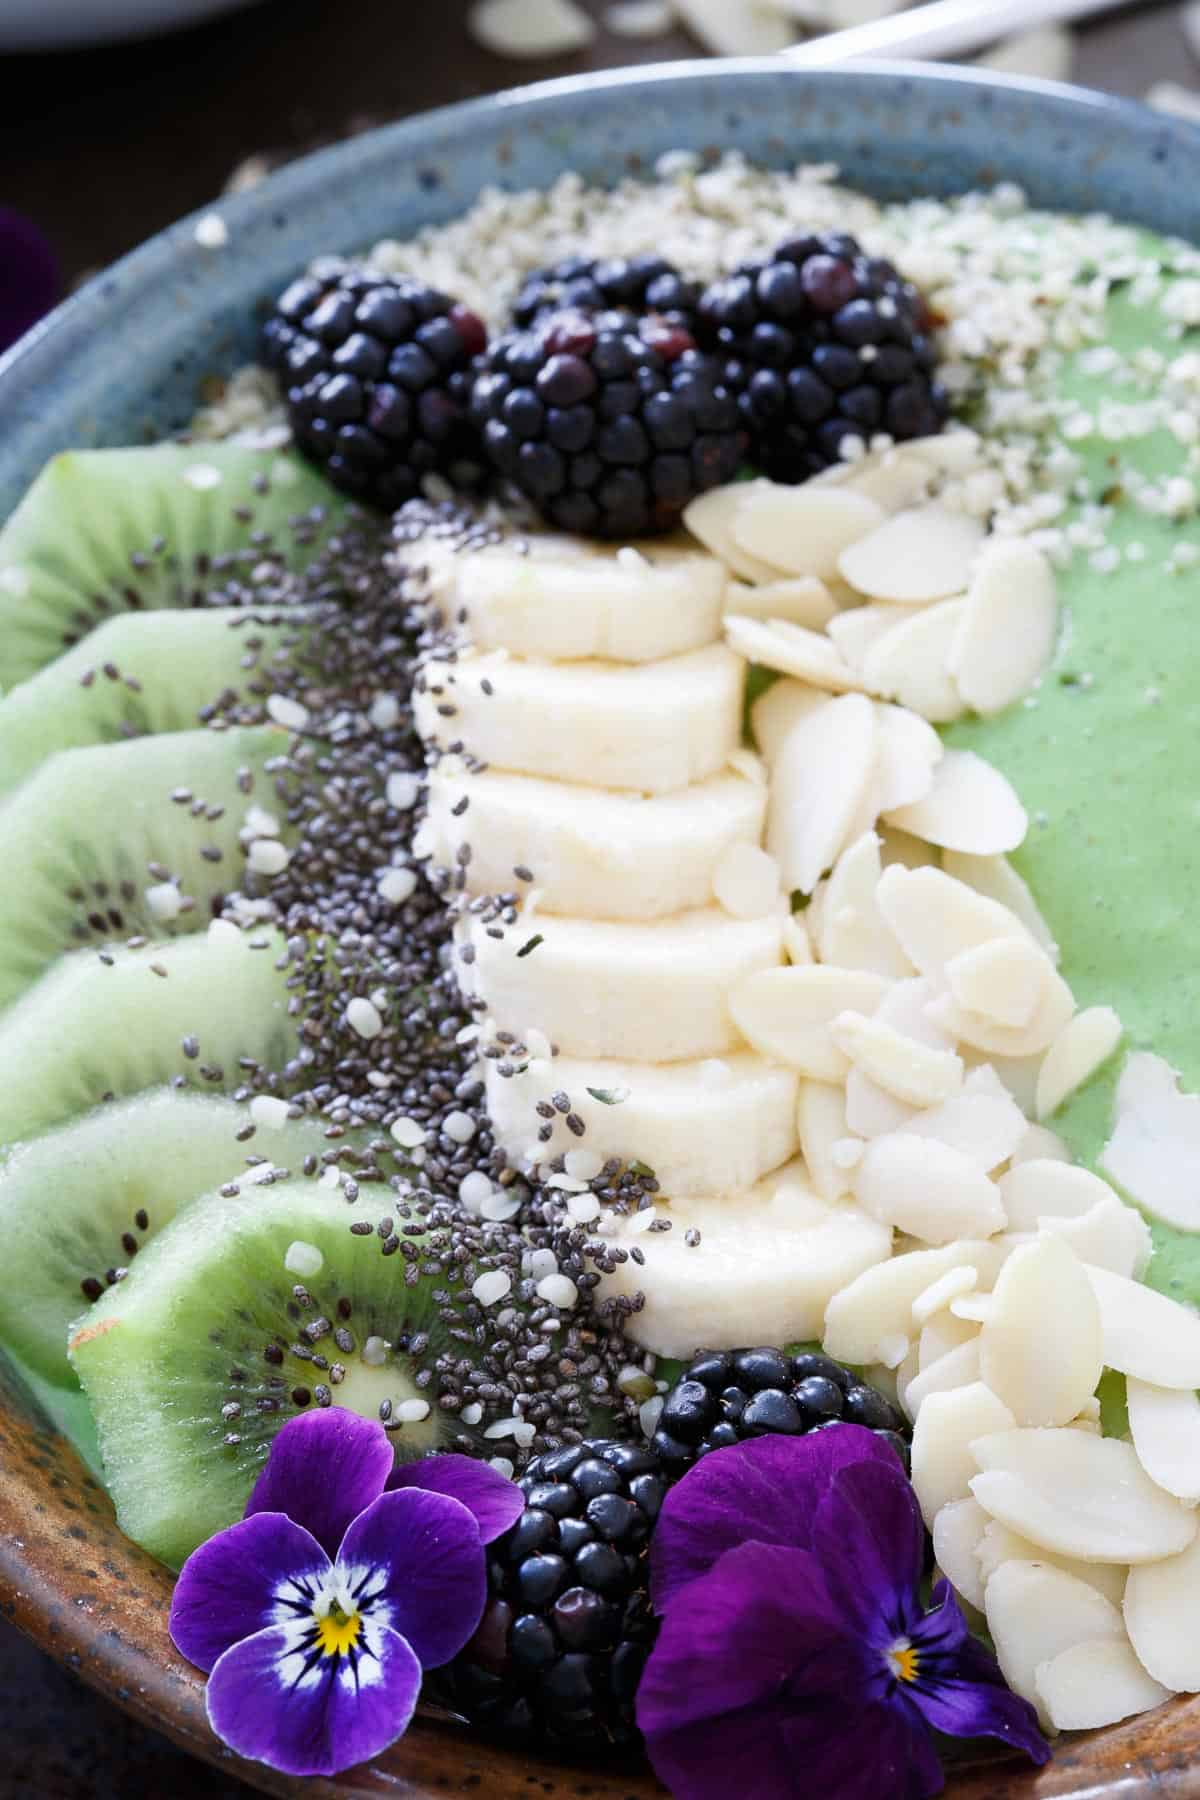 Avocado Pineapple Smoothie Bowls are a healthy way to start off your day